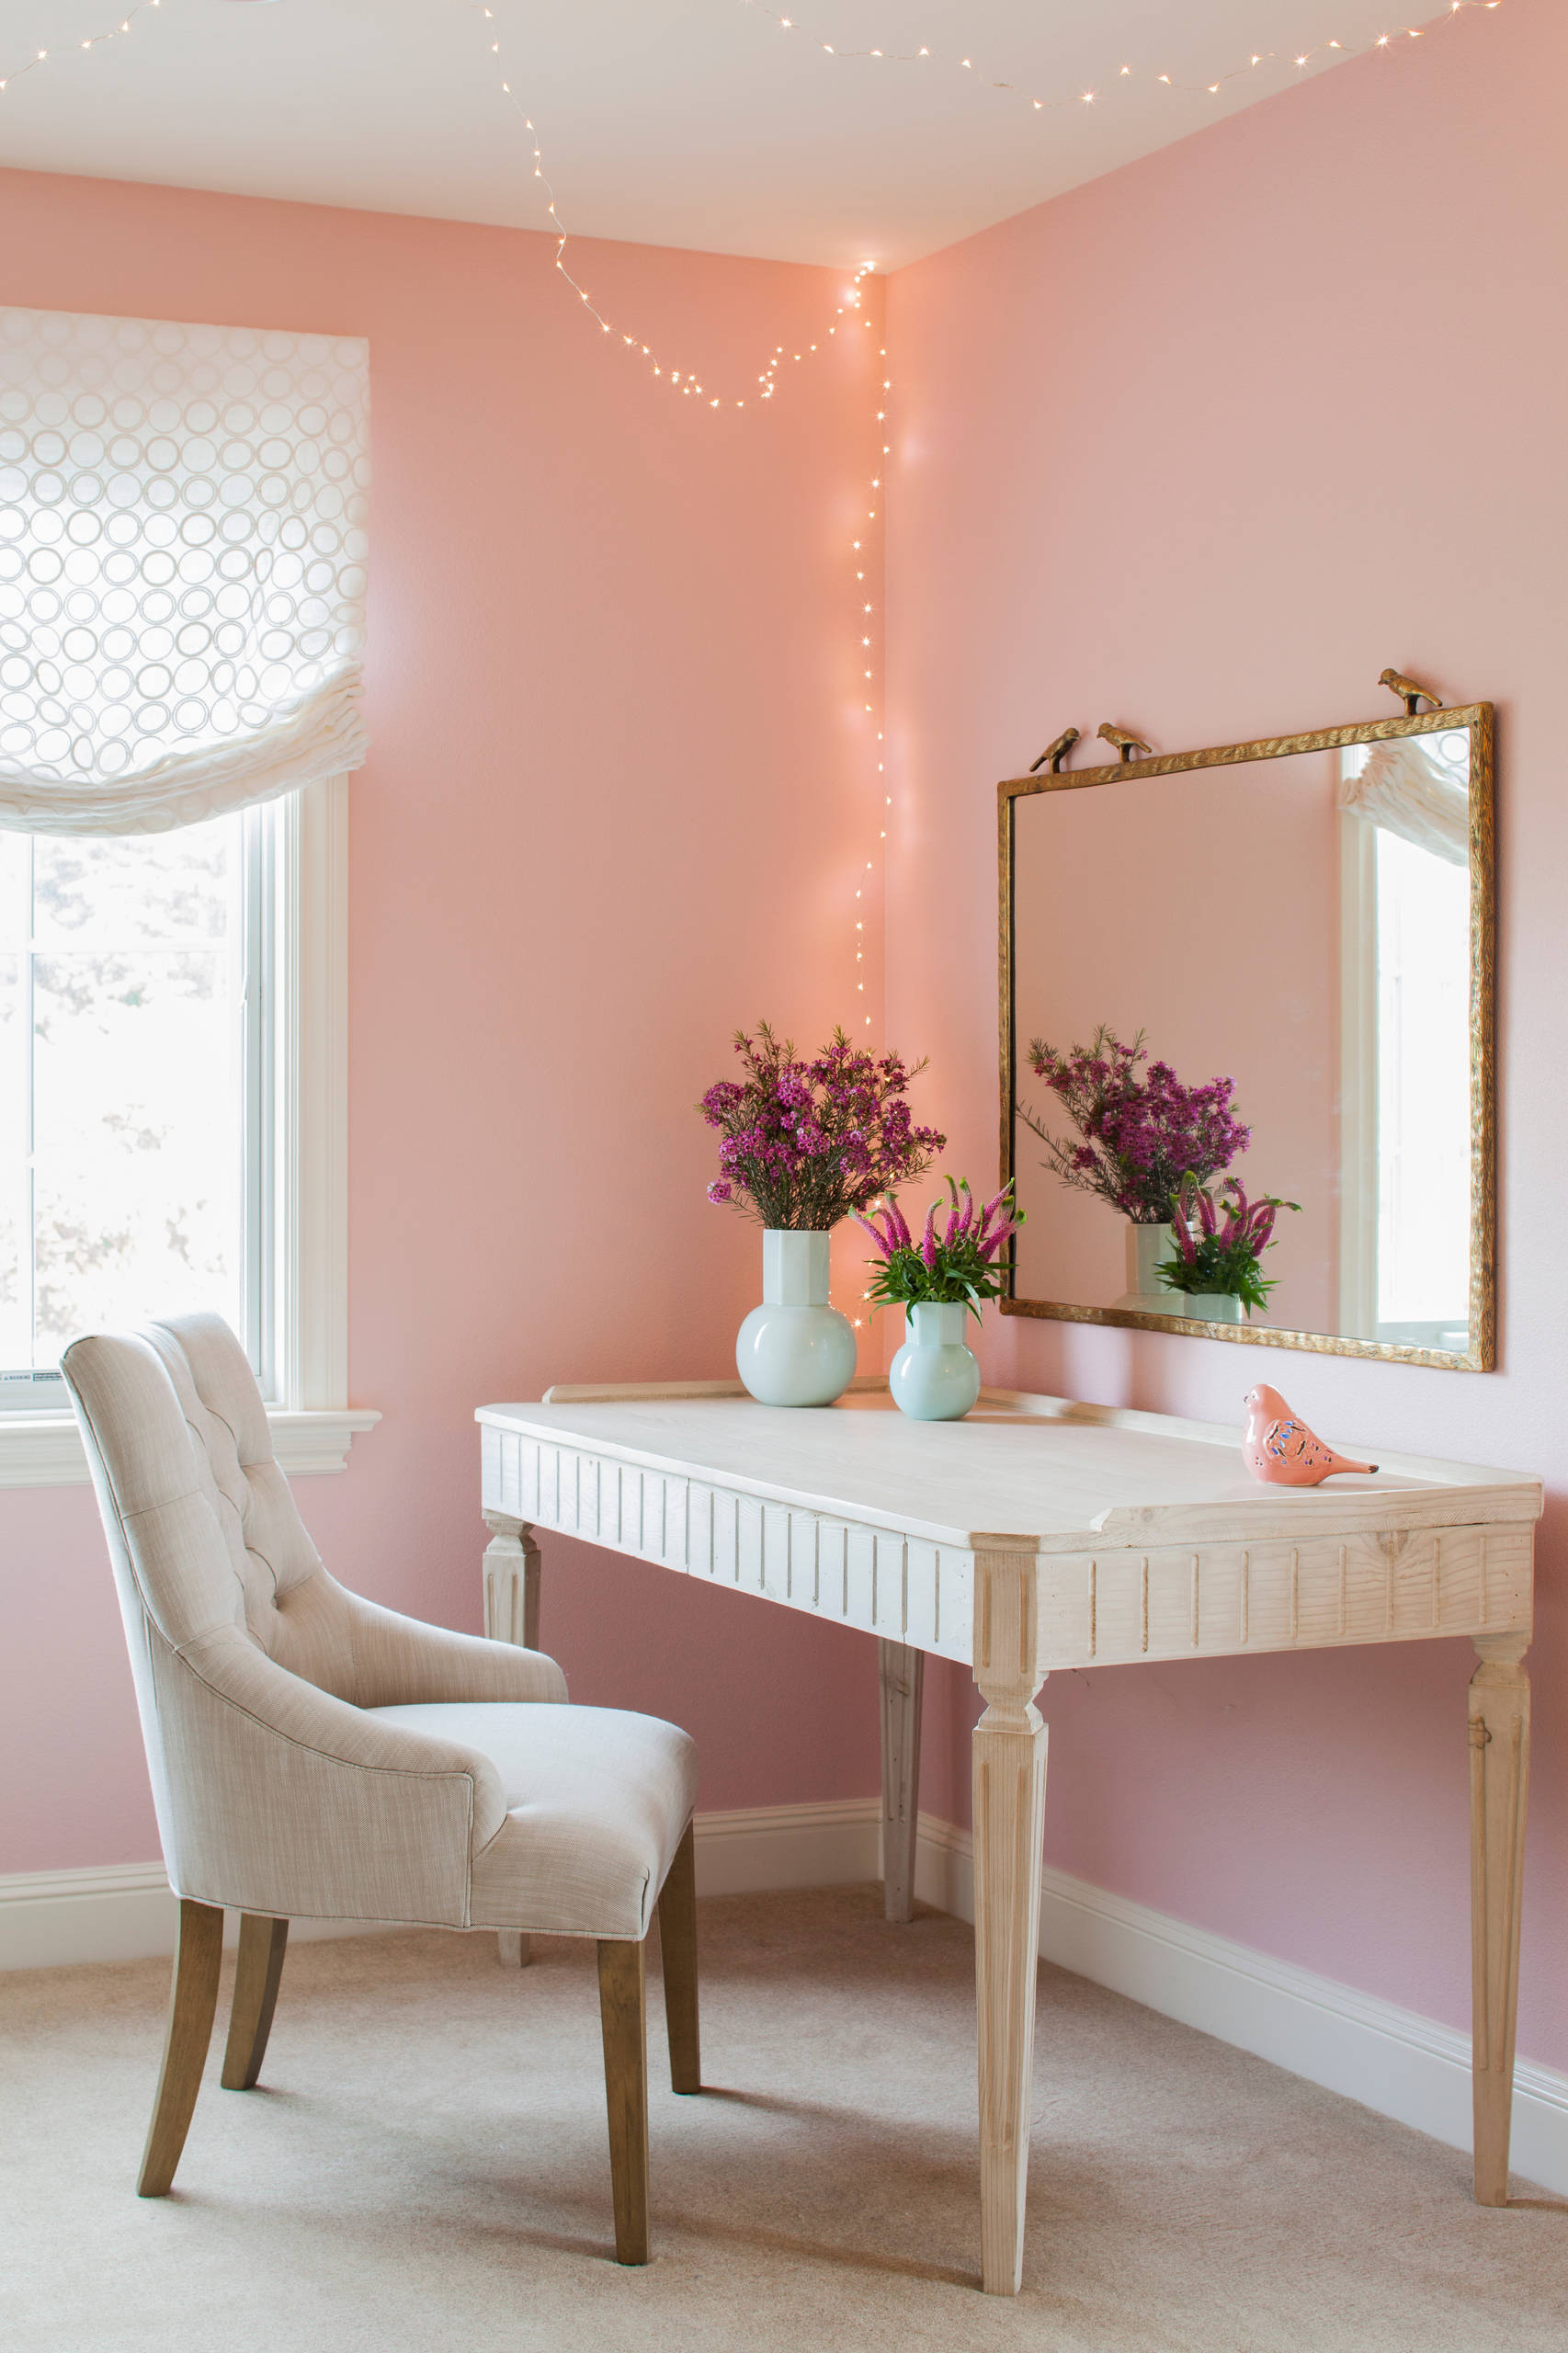 75 Beautiful Pink Bedroom Pictures Ideas November 2020 Houzz